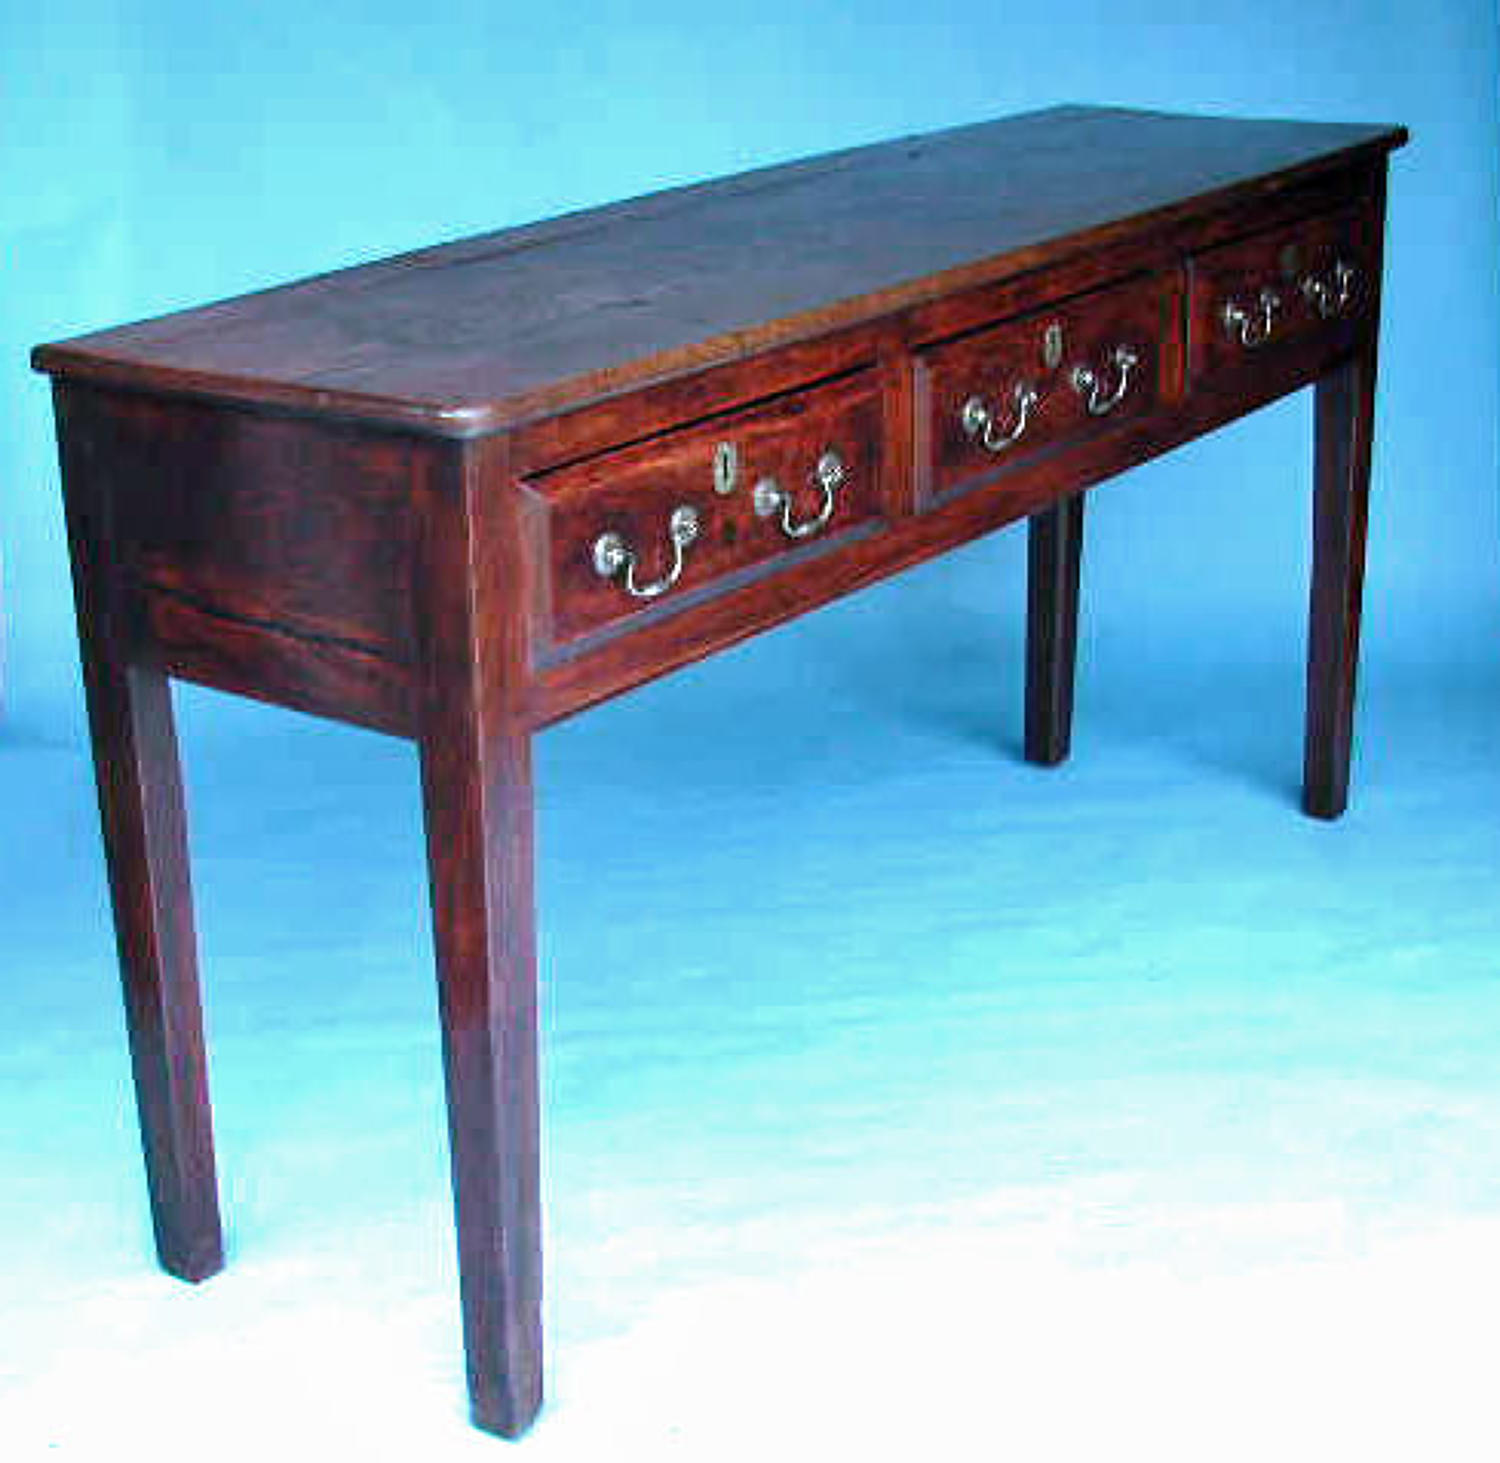 18thc Country Furniture Small Figured Ash Low Dresser. English. C1770